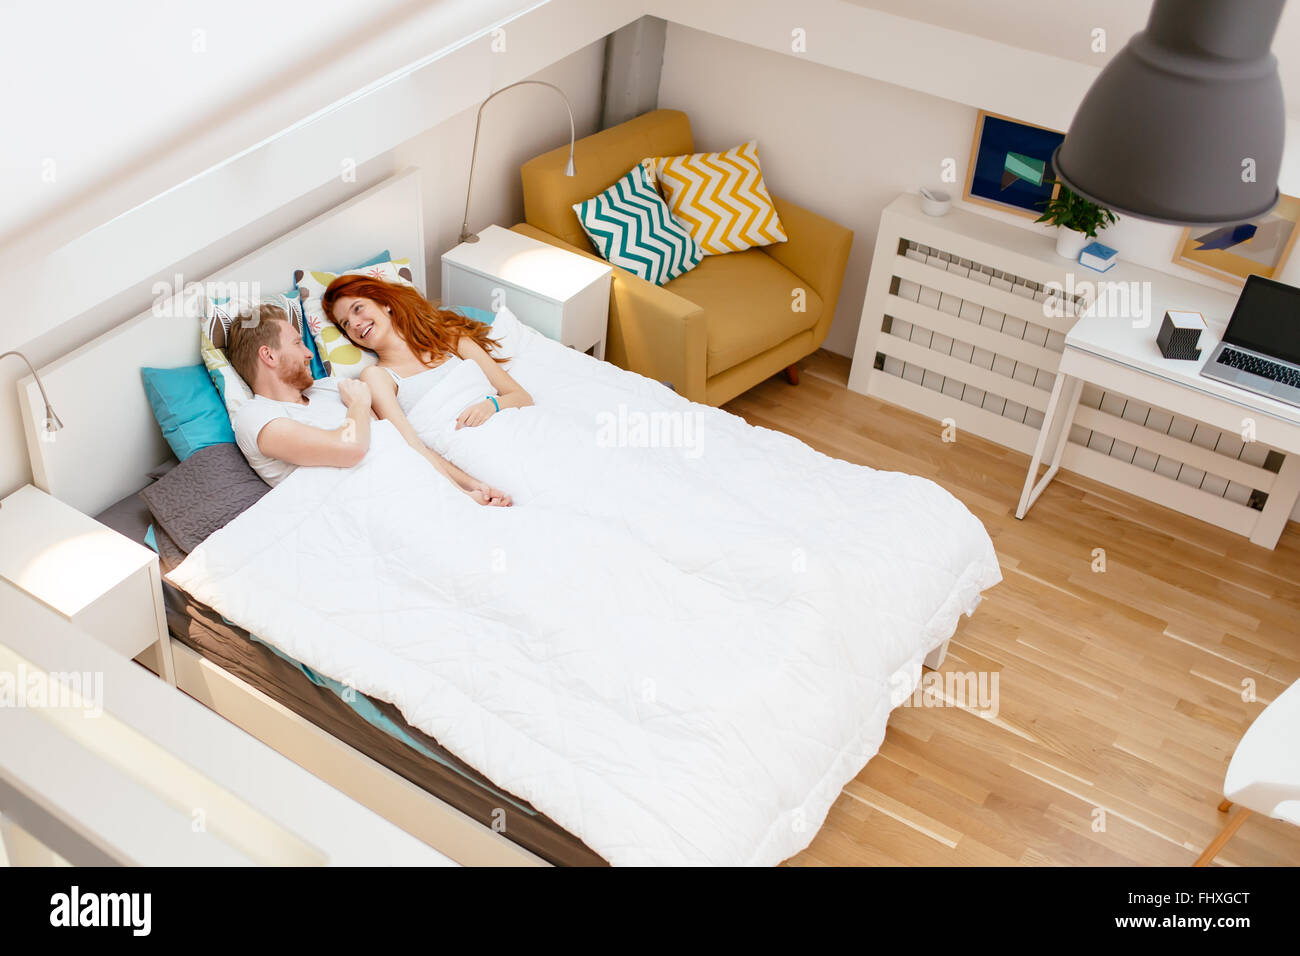 Romantic couple resting in bed and bonding during weekend - Stock Image